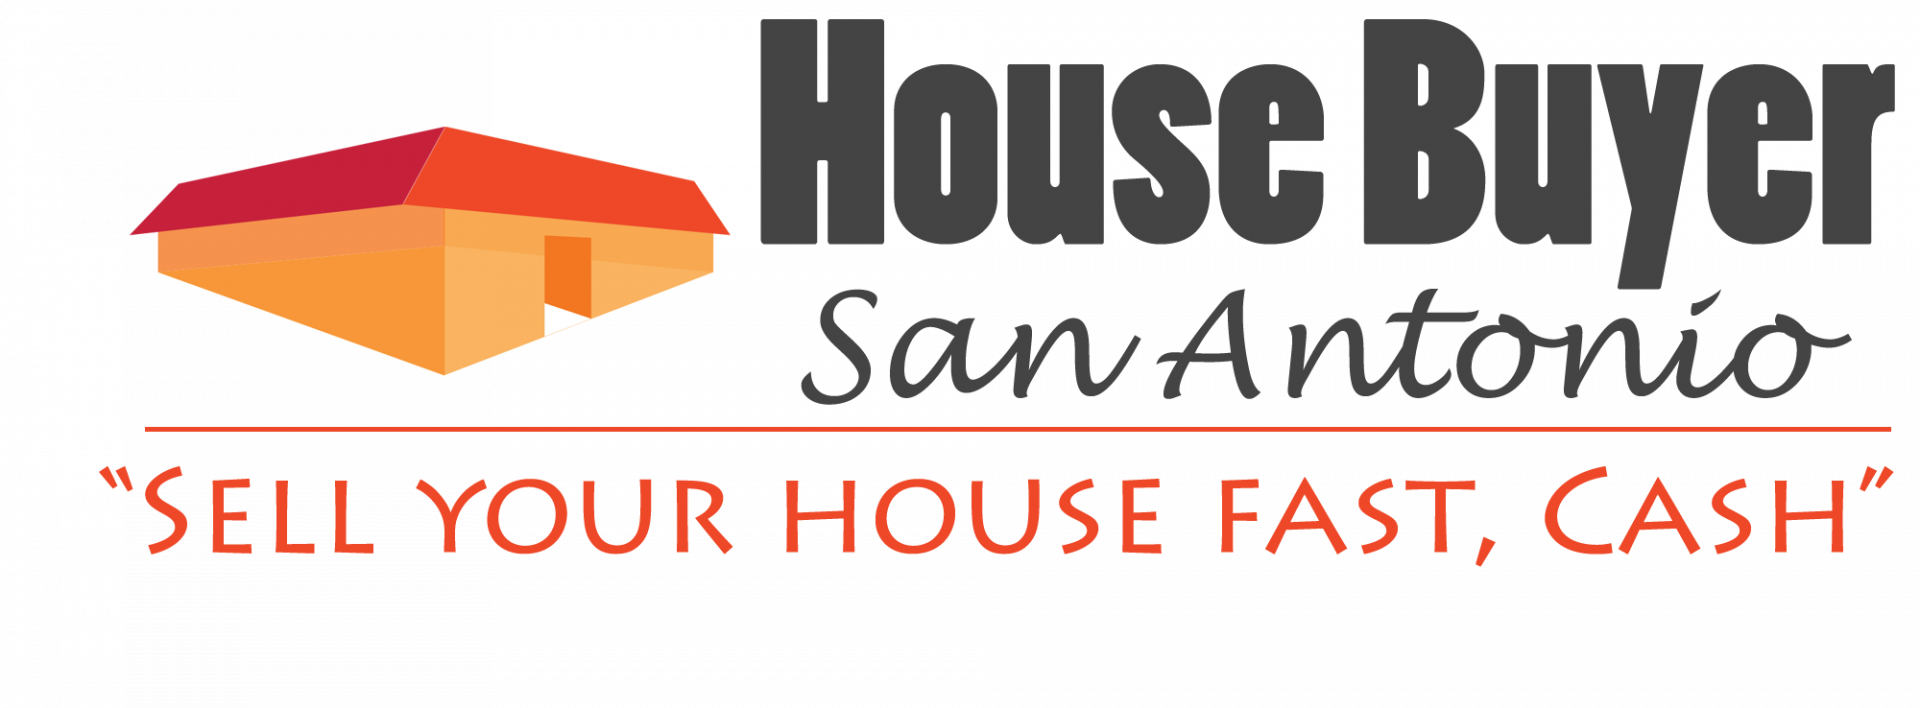 House Buyers | We Buy Houses San Antonio logo